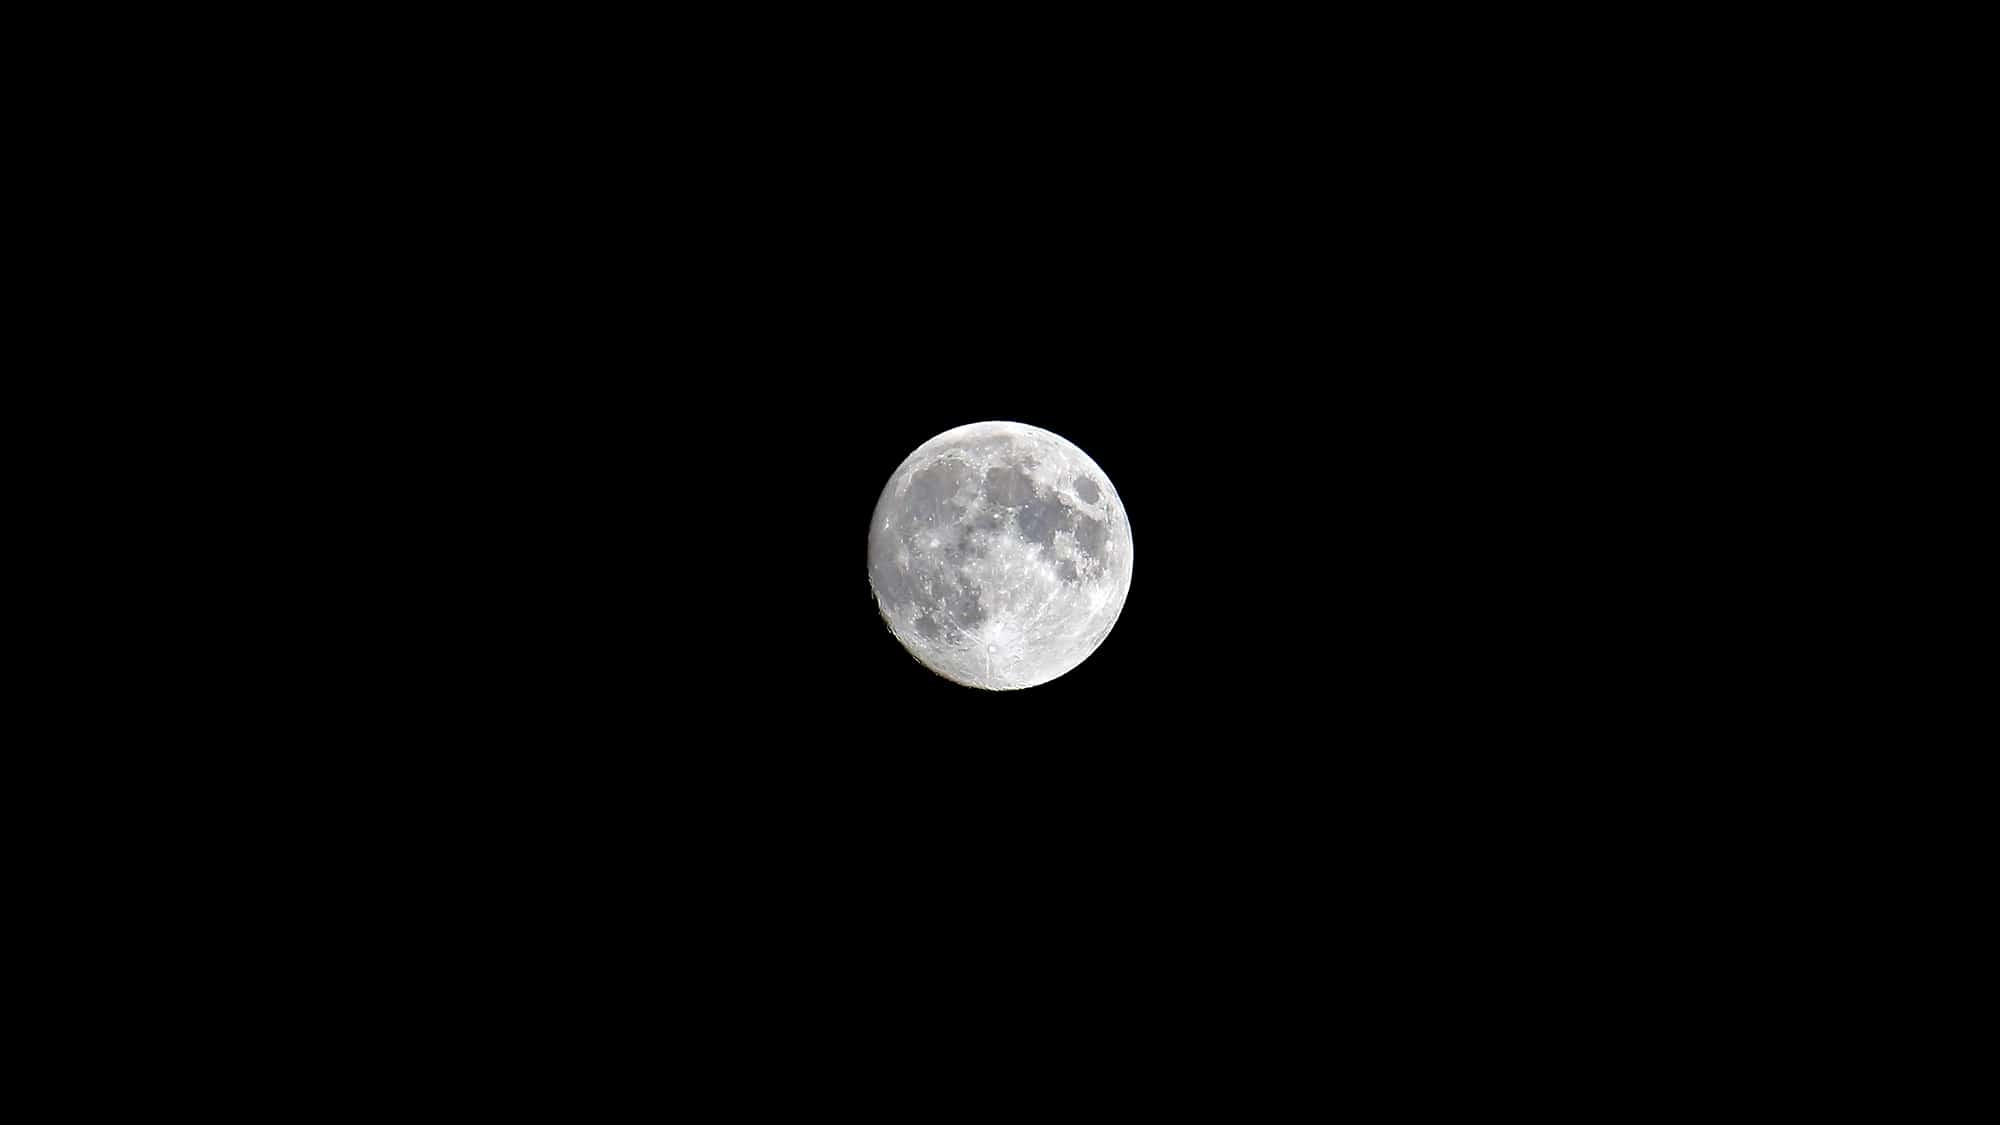 Moon - Waxing Gibbous